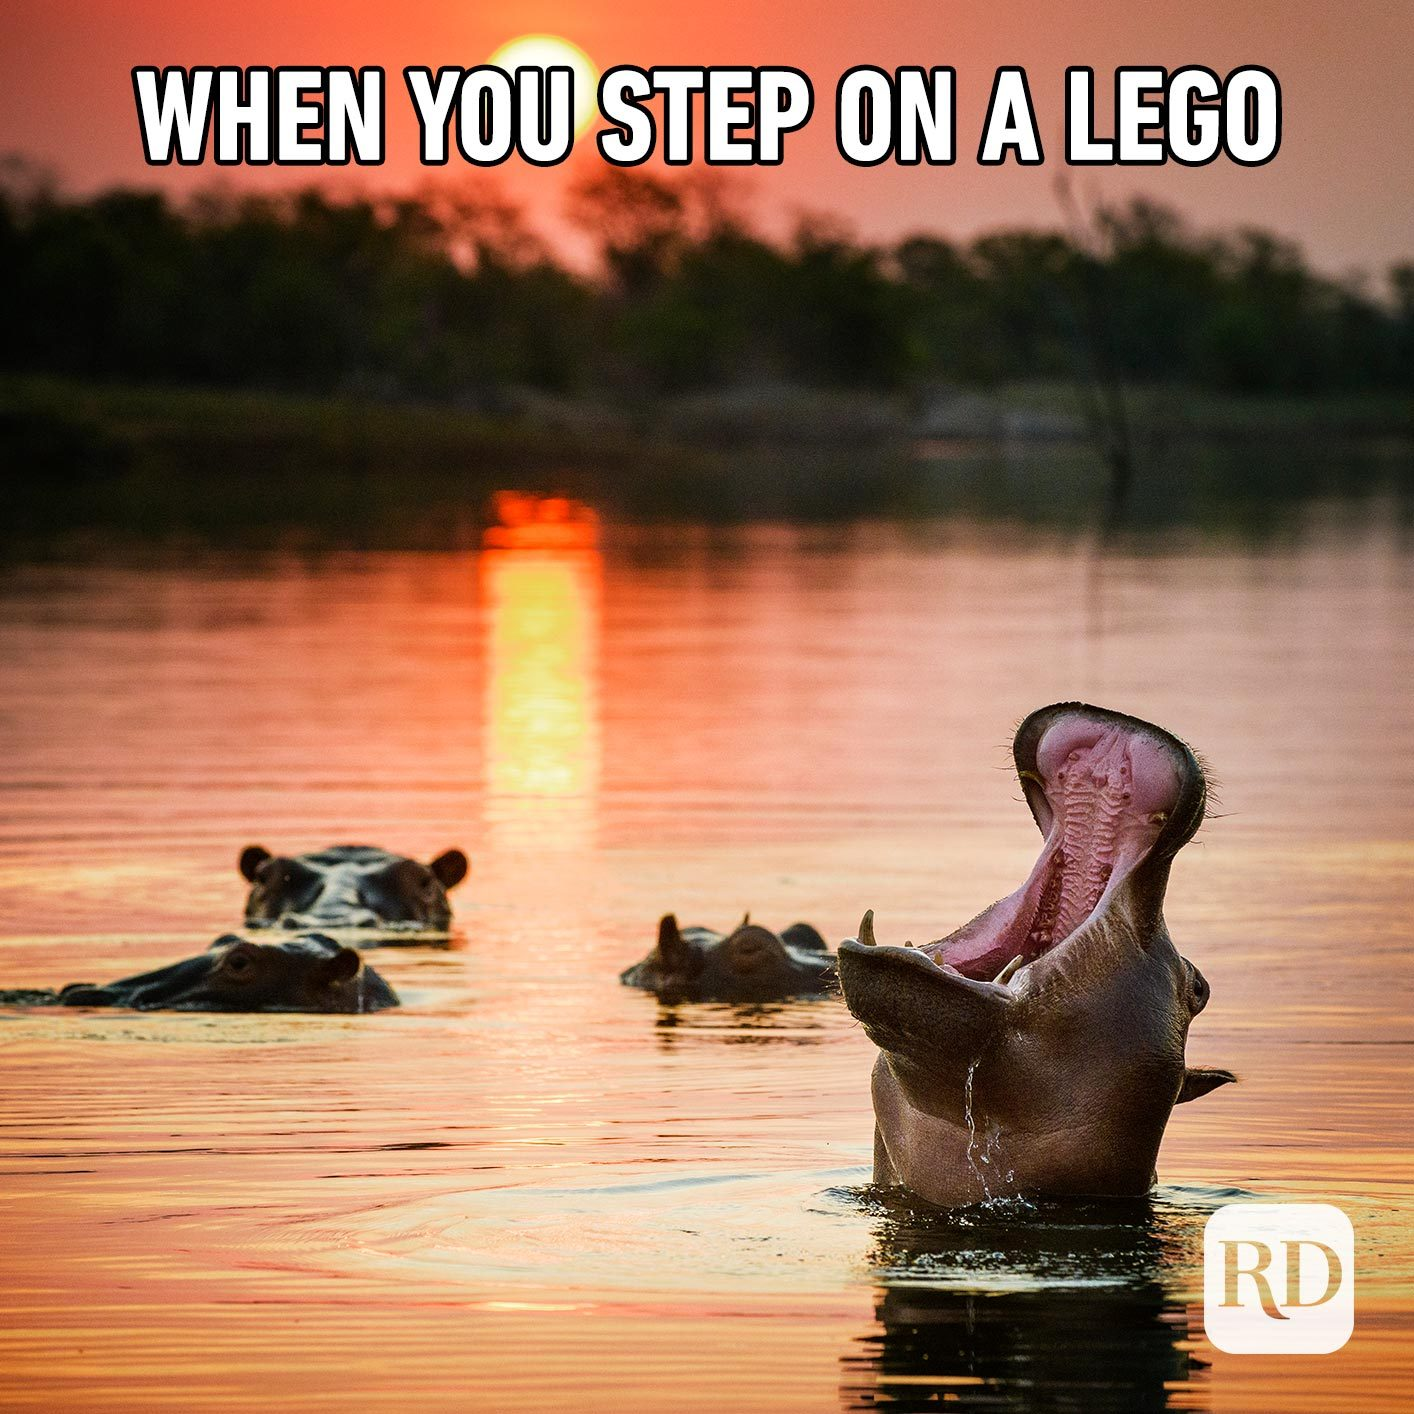 Hippo rising out of water to scream. Meme text: When you step on a Lego